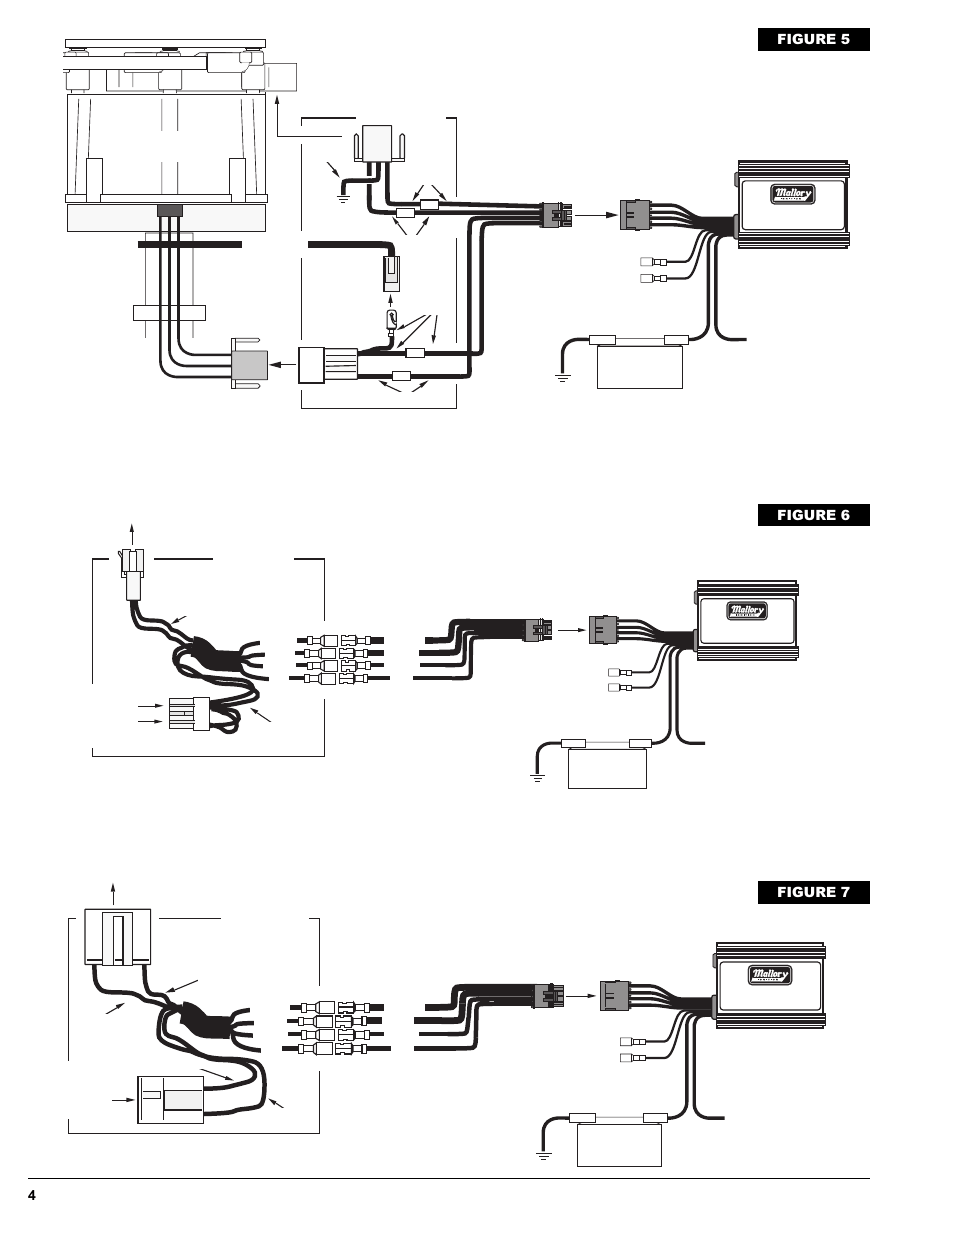 mallory ignition wiring diagram 4 lead ekg placement gm/delco hei distributor, ford tfi systems, gm hei/est distributor - external coil ...